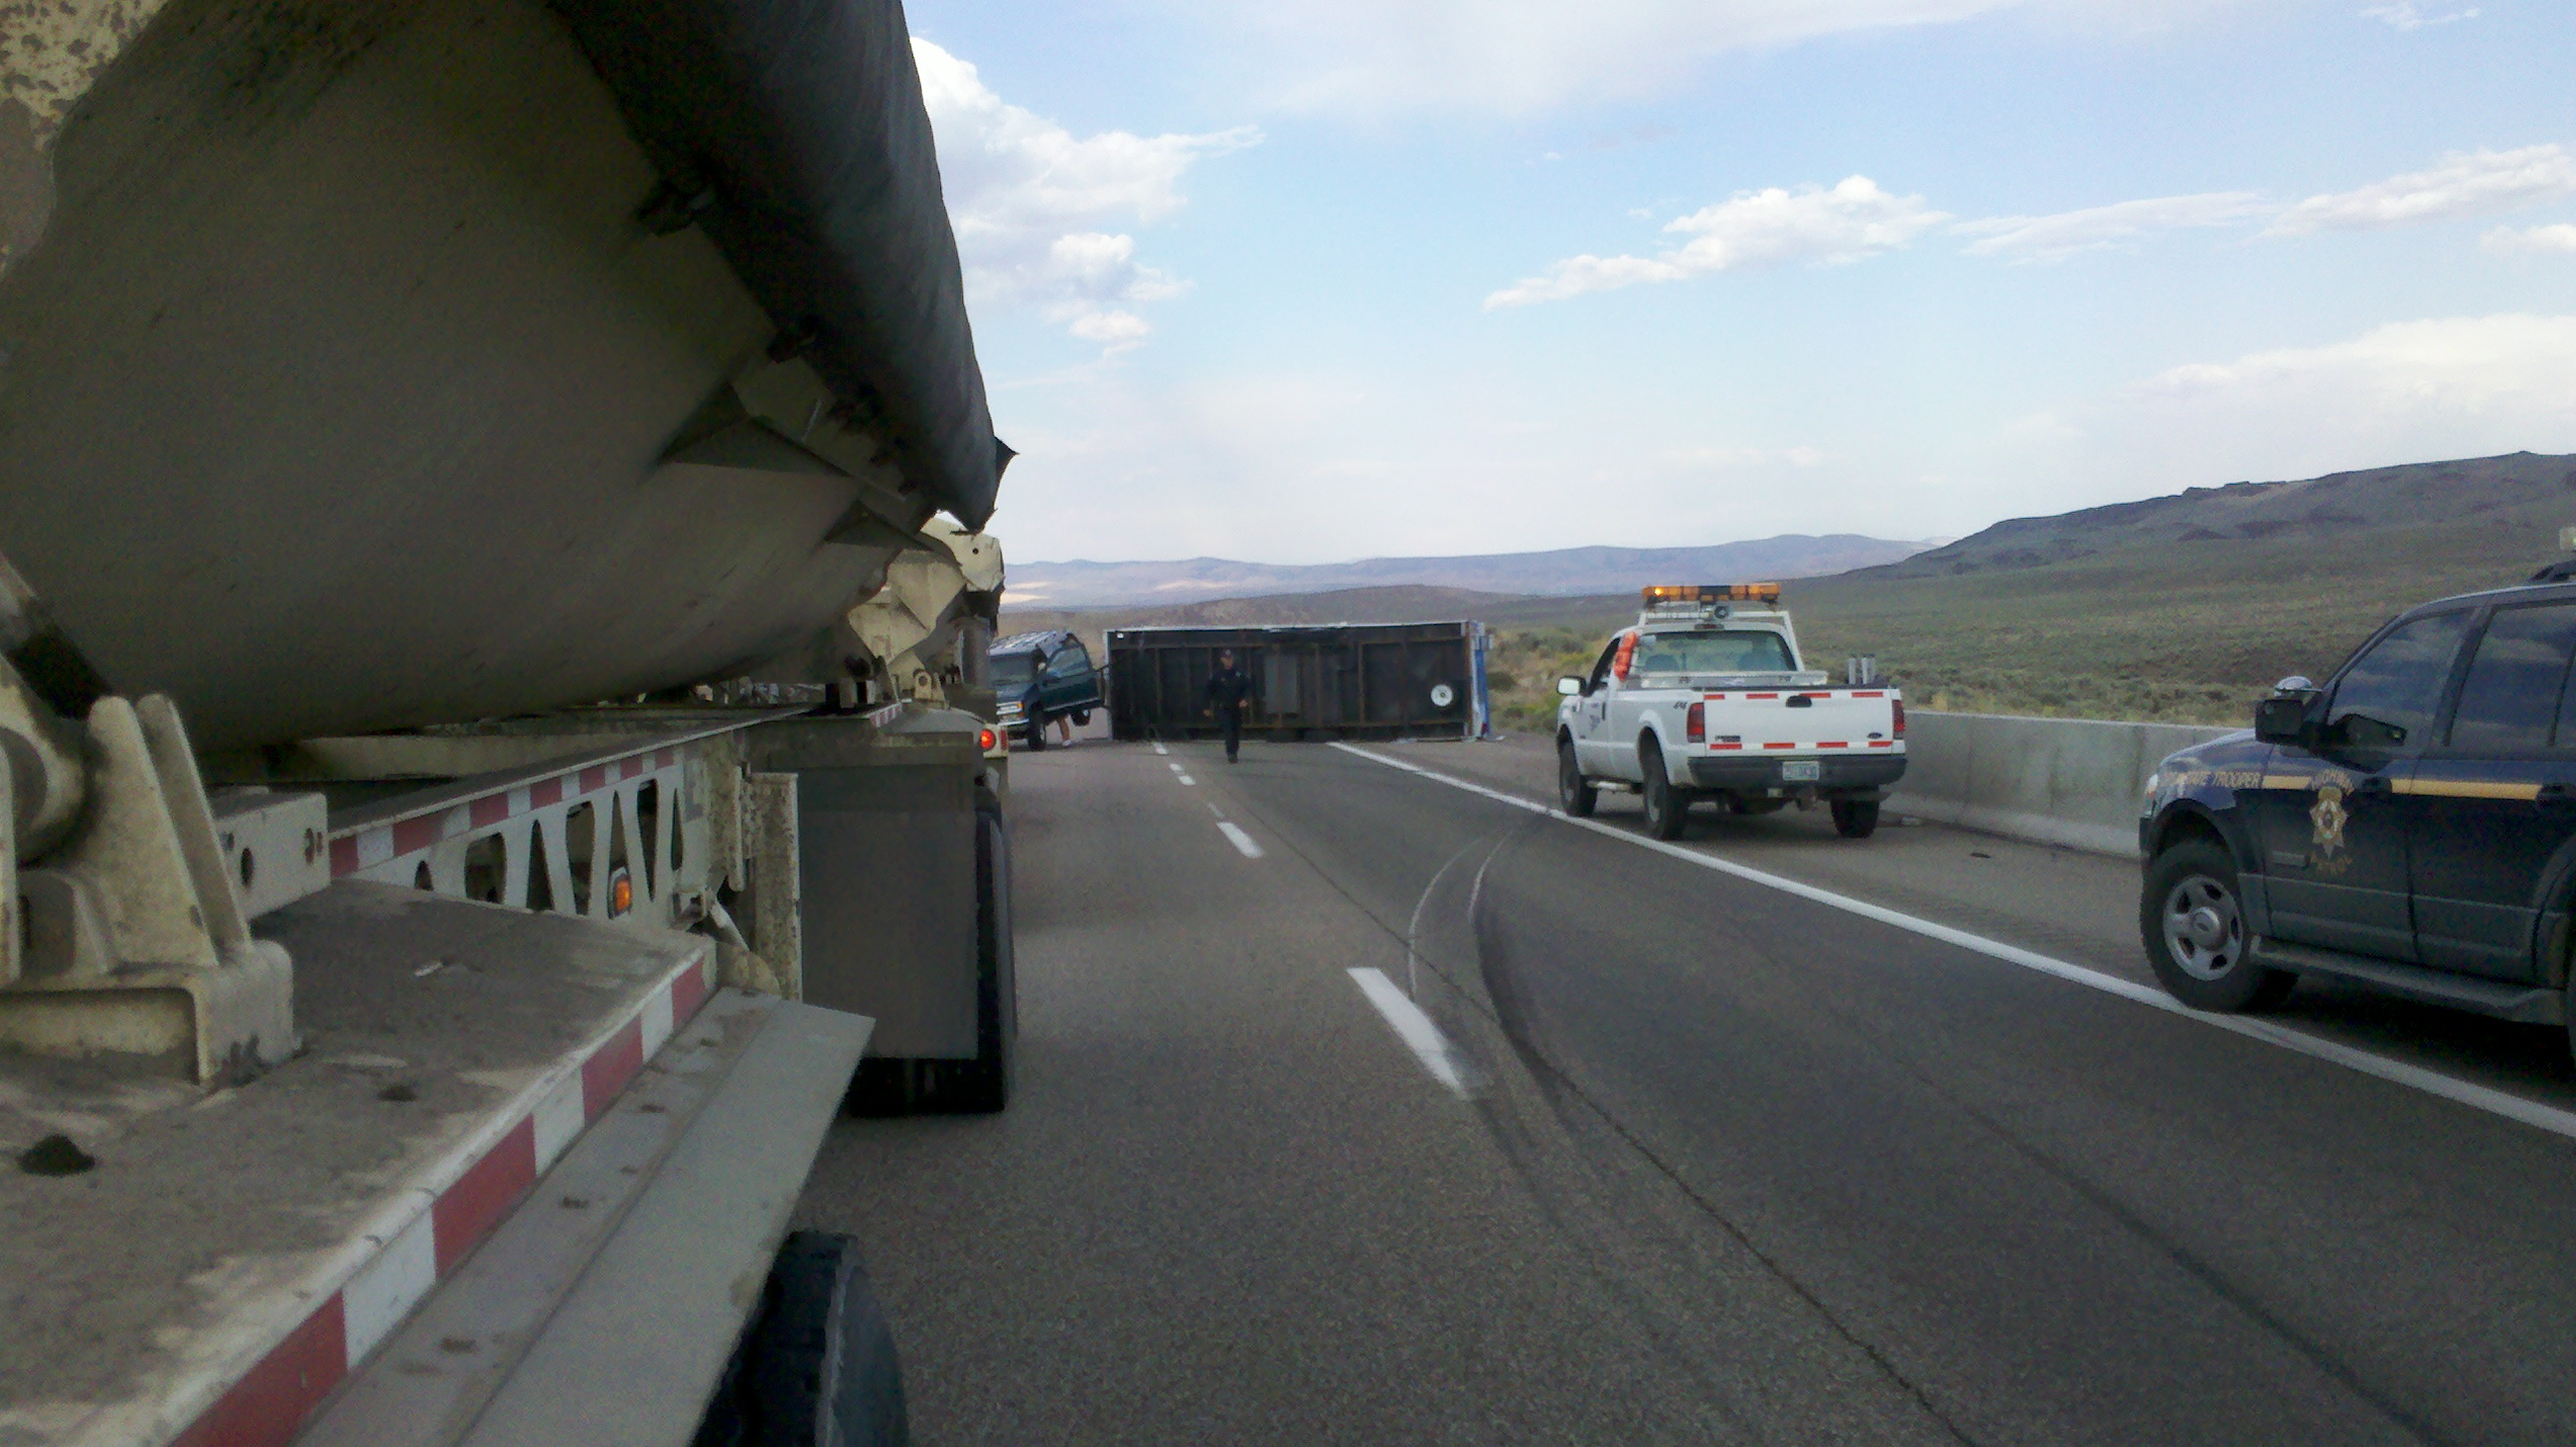 Travel Trailer on its side wast of Winnemucca NV on I80